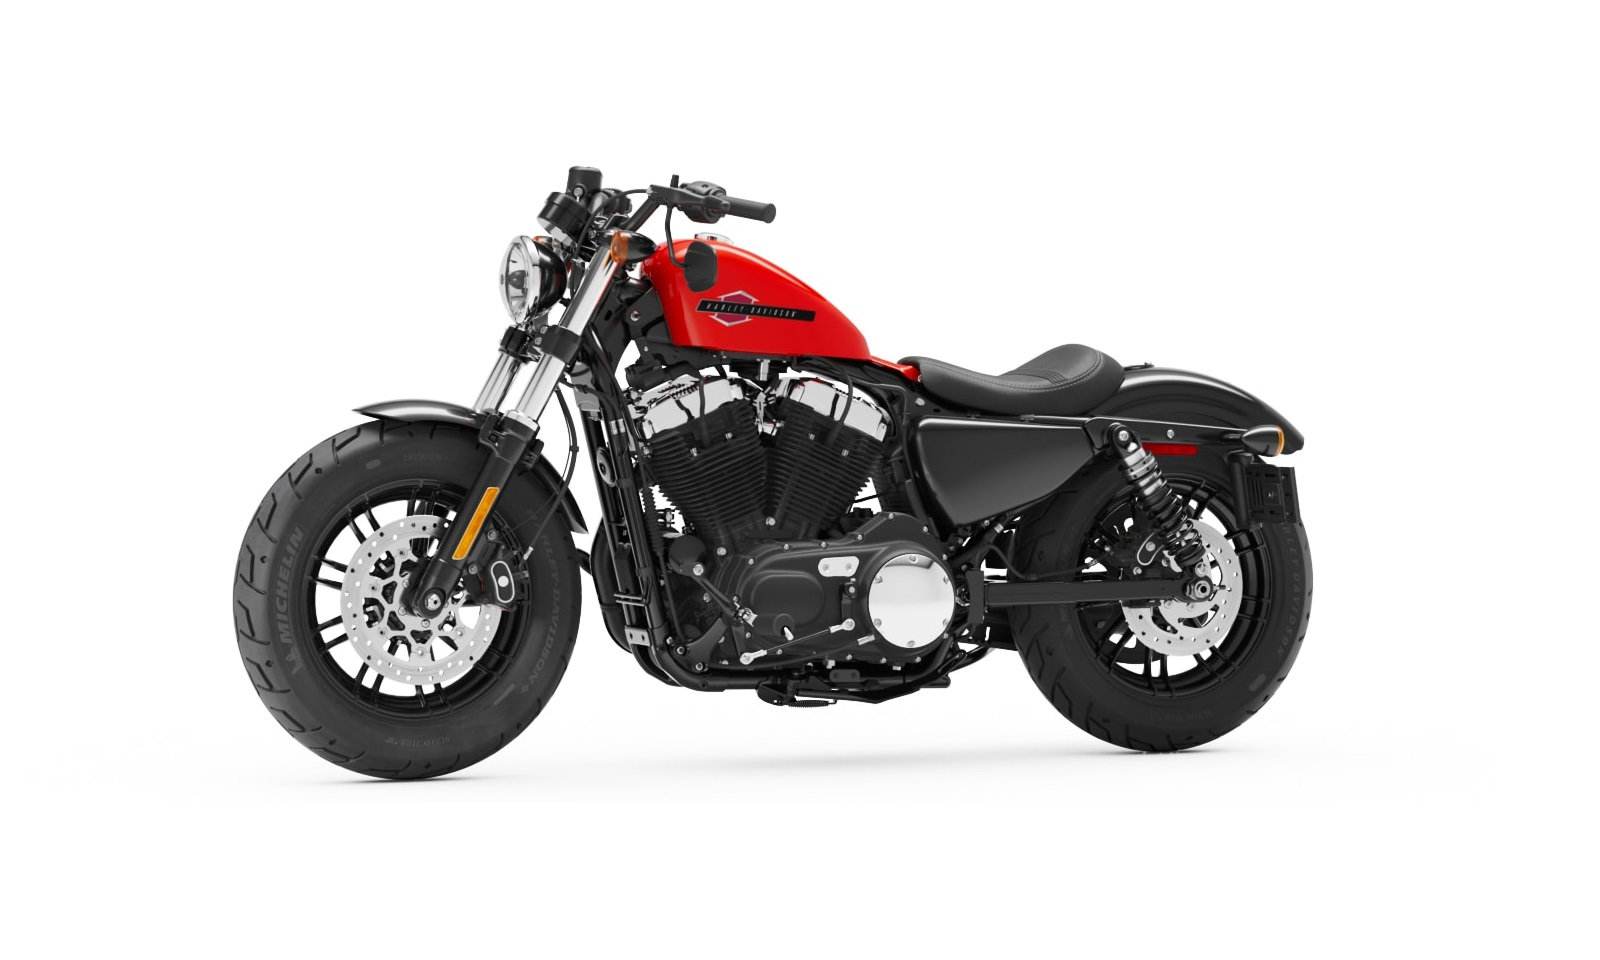 2020 Harley-Davidson Forty Eight Side View